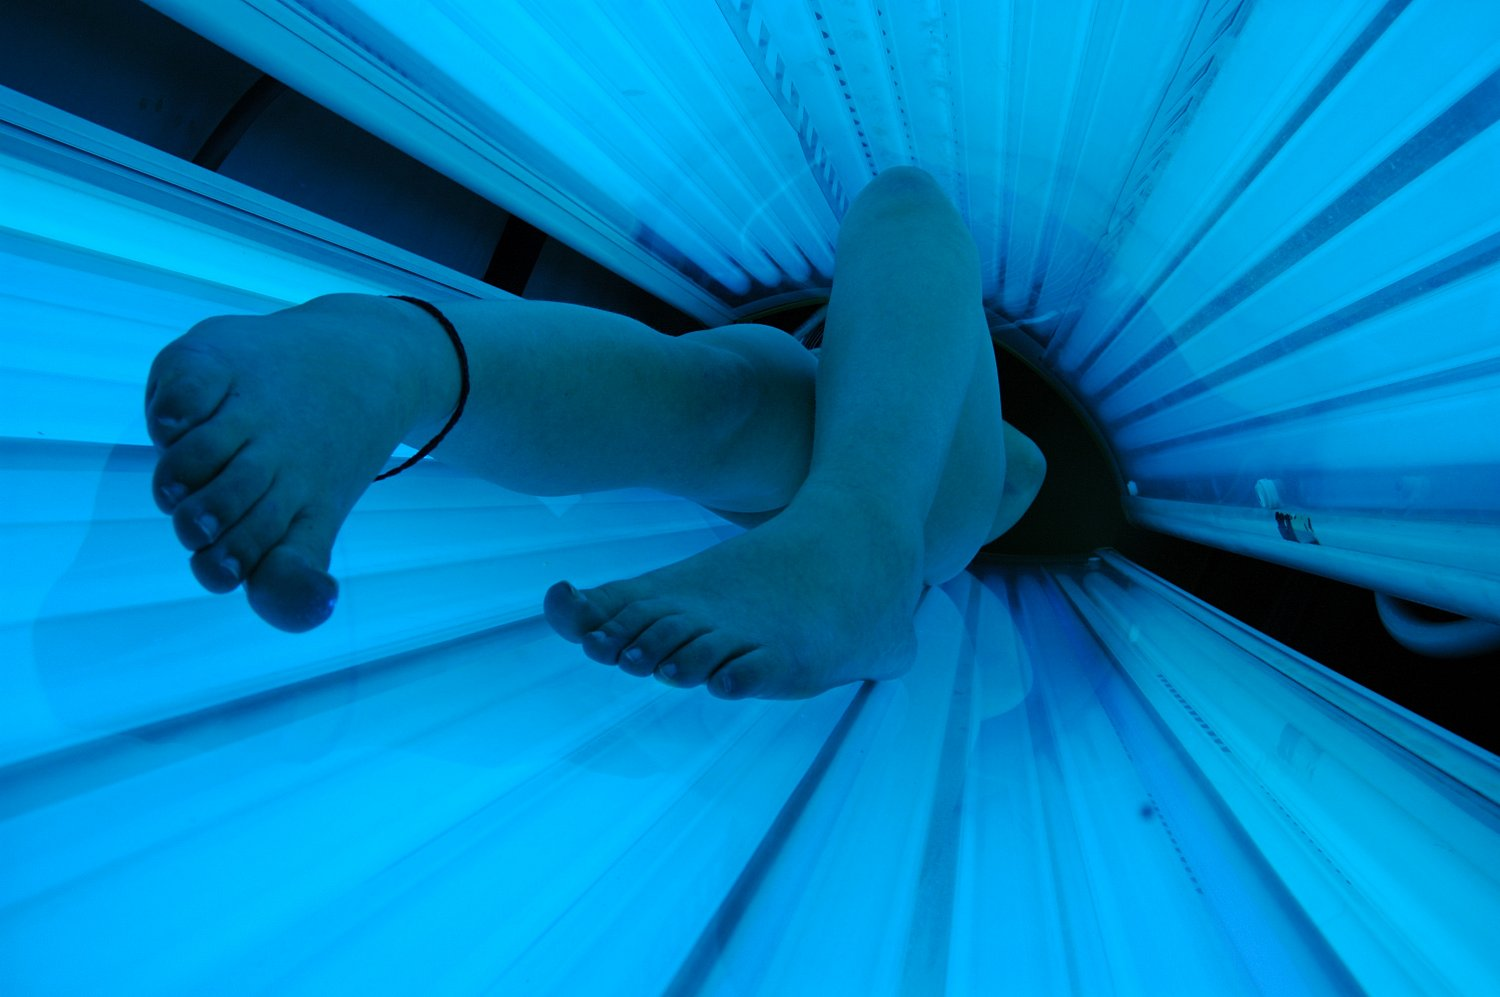 tanning bed in use